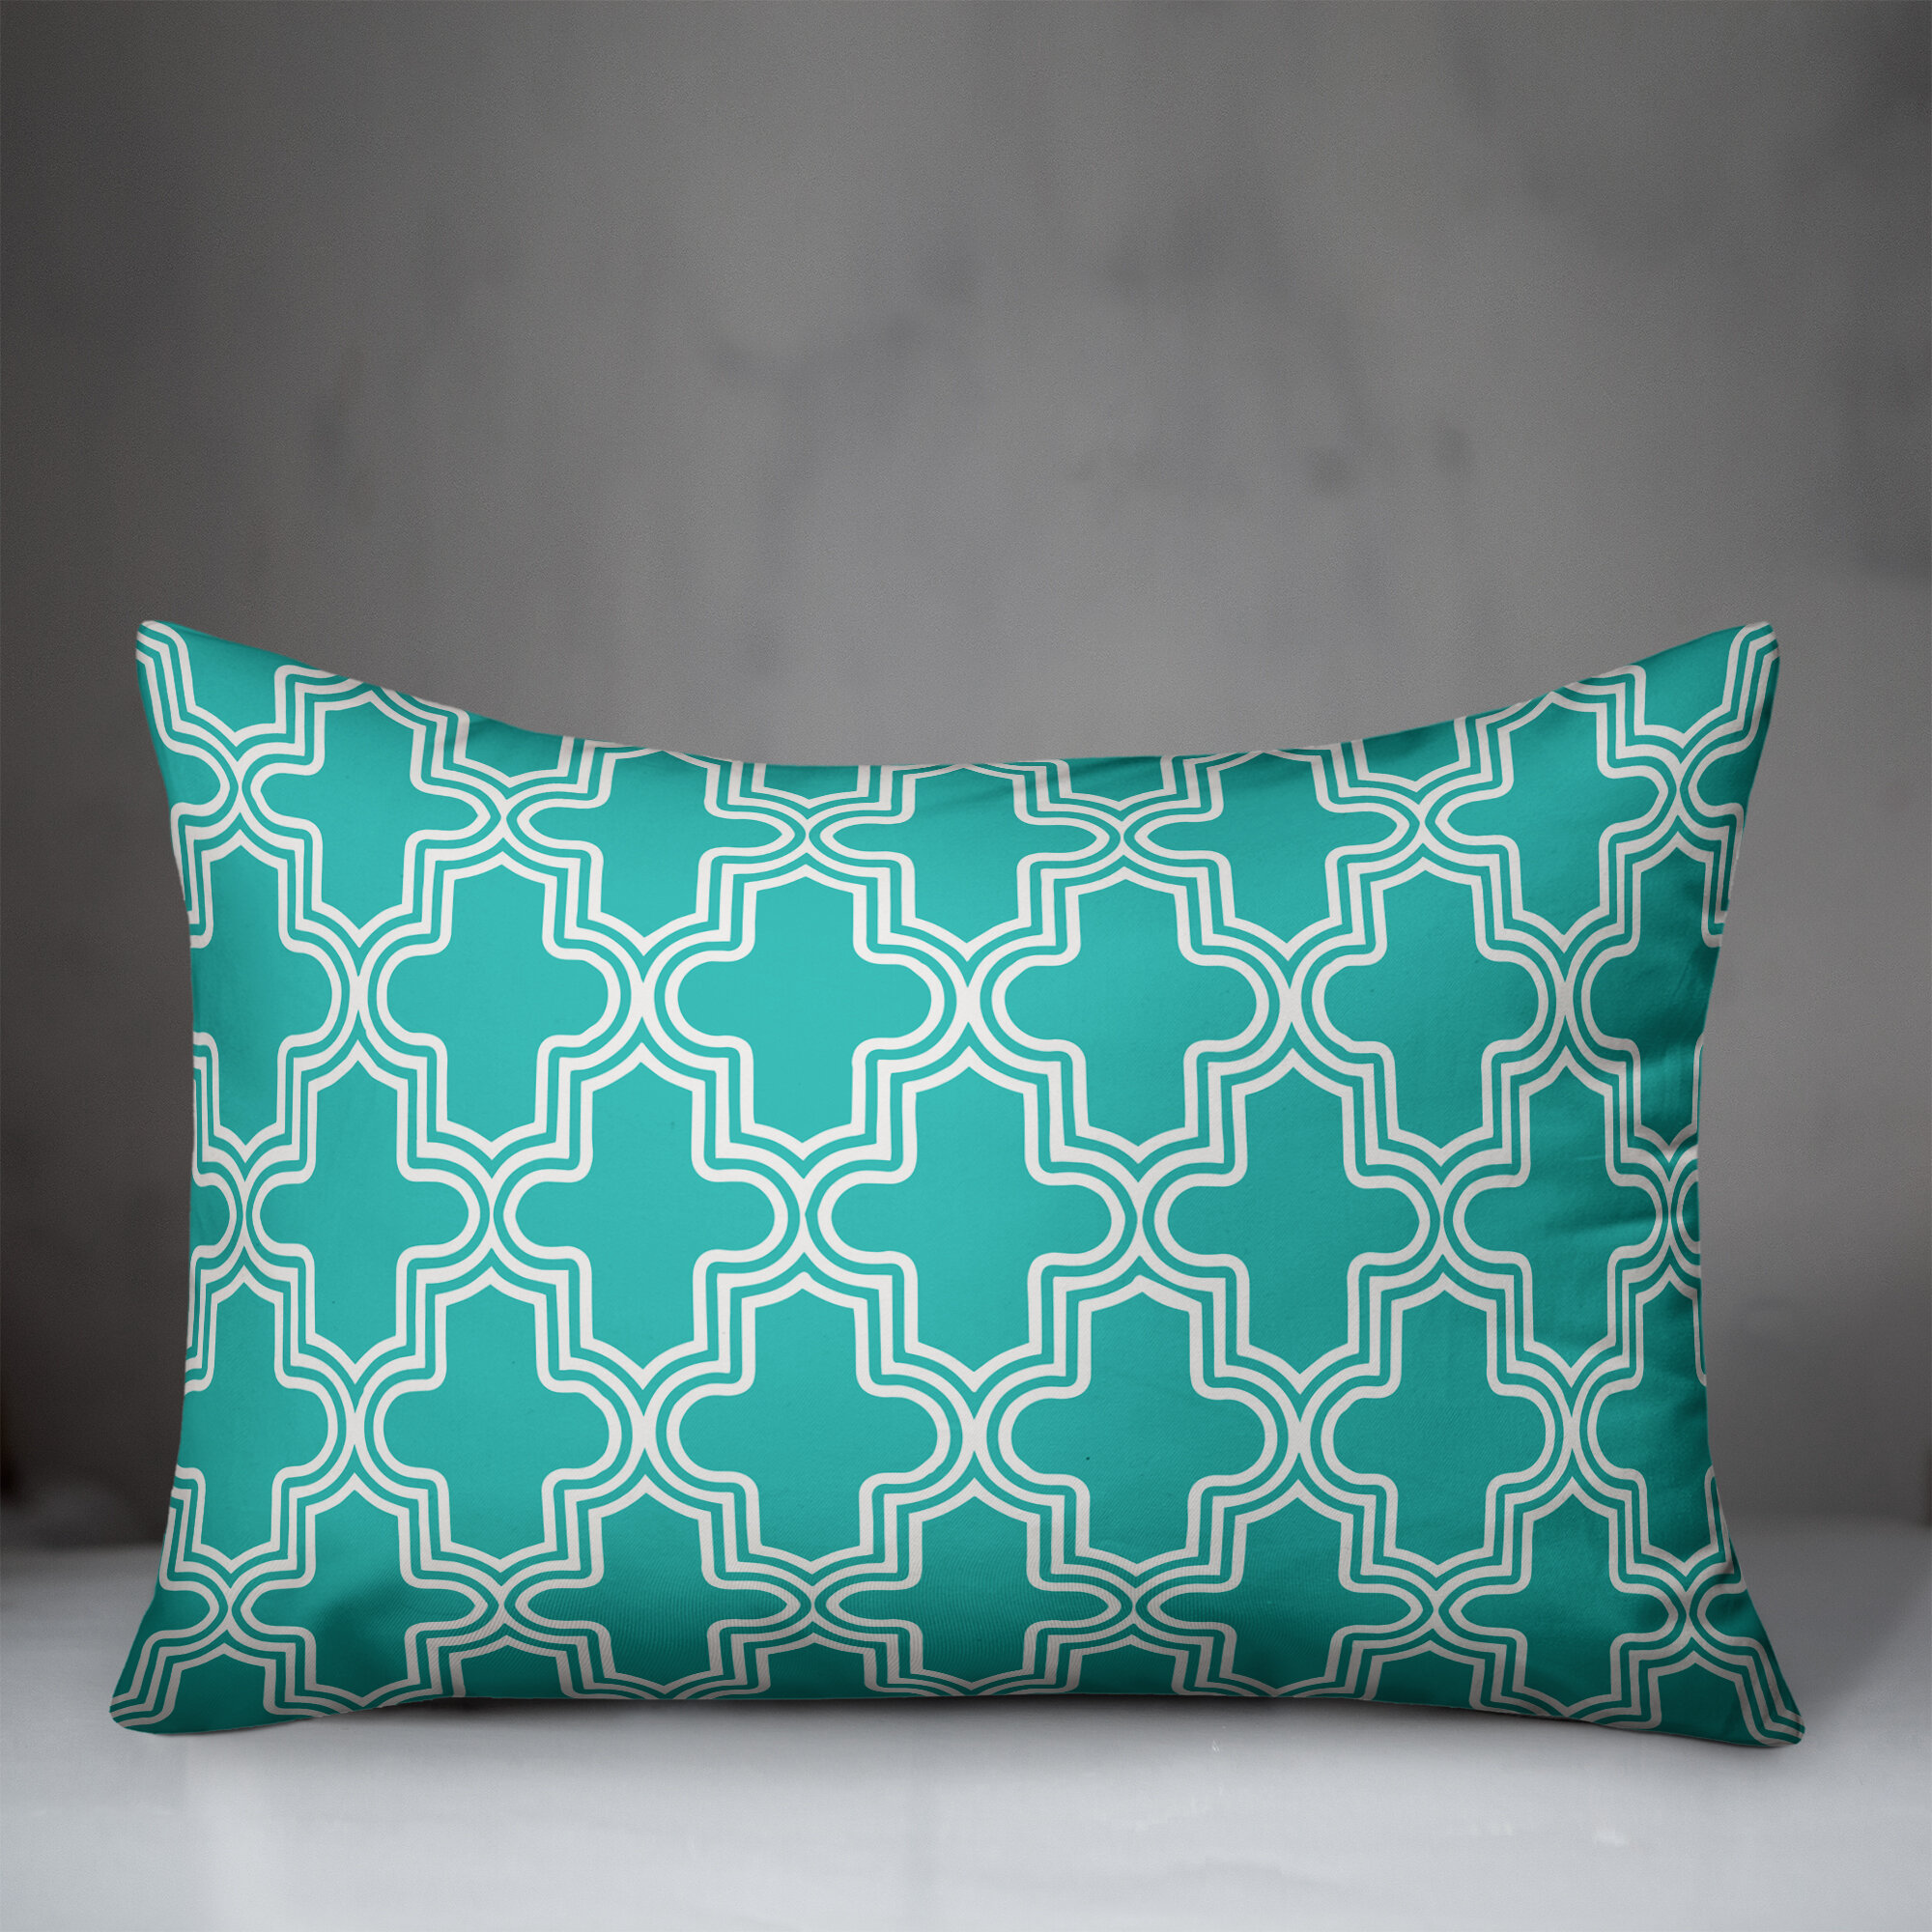 Charlton Home Zed Boho Quatrefoil Indoor Outdoor Throw Pillow Wayfair